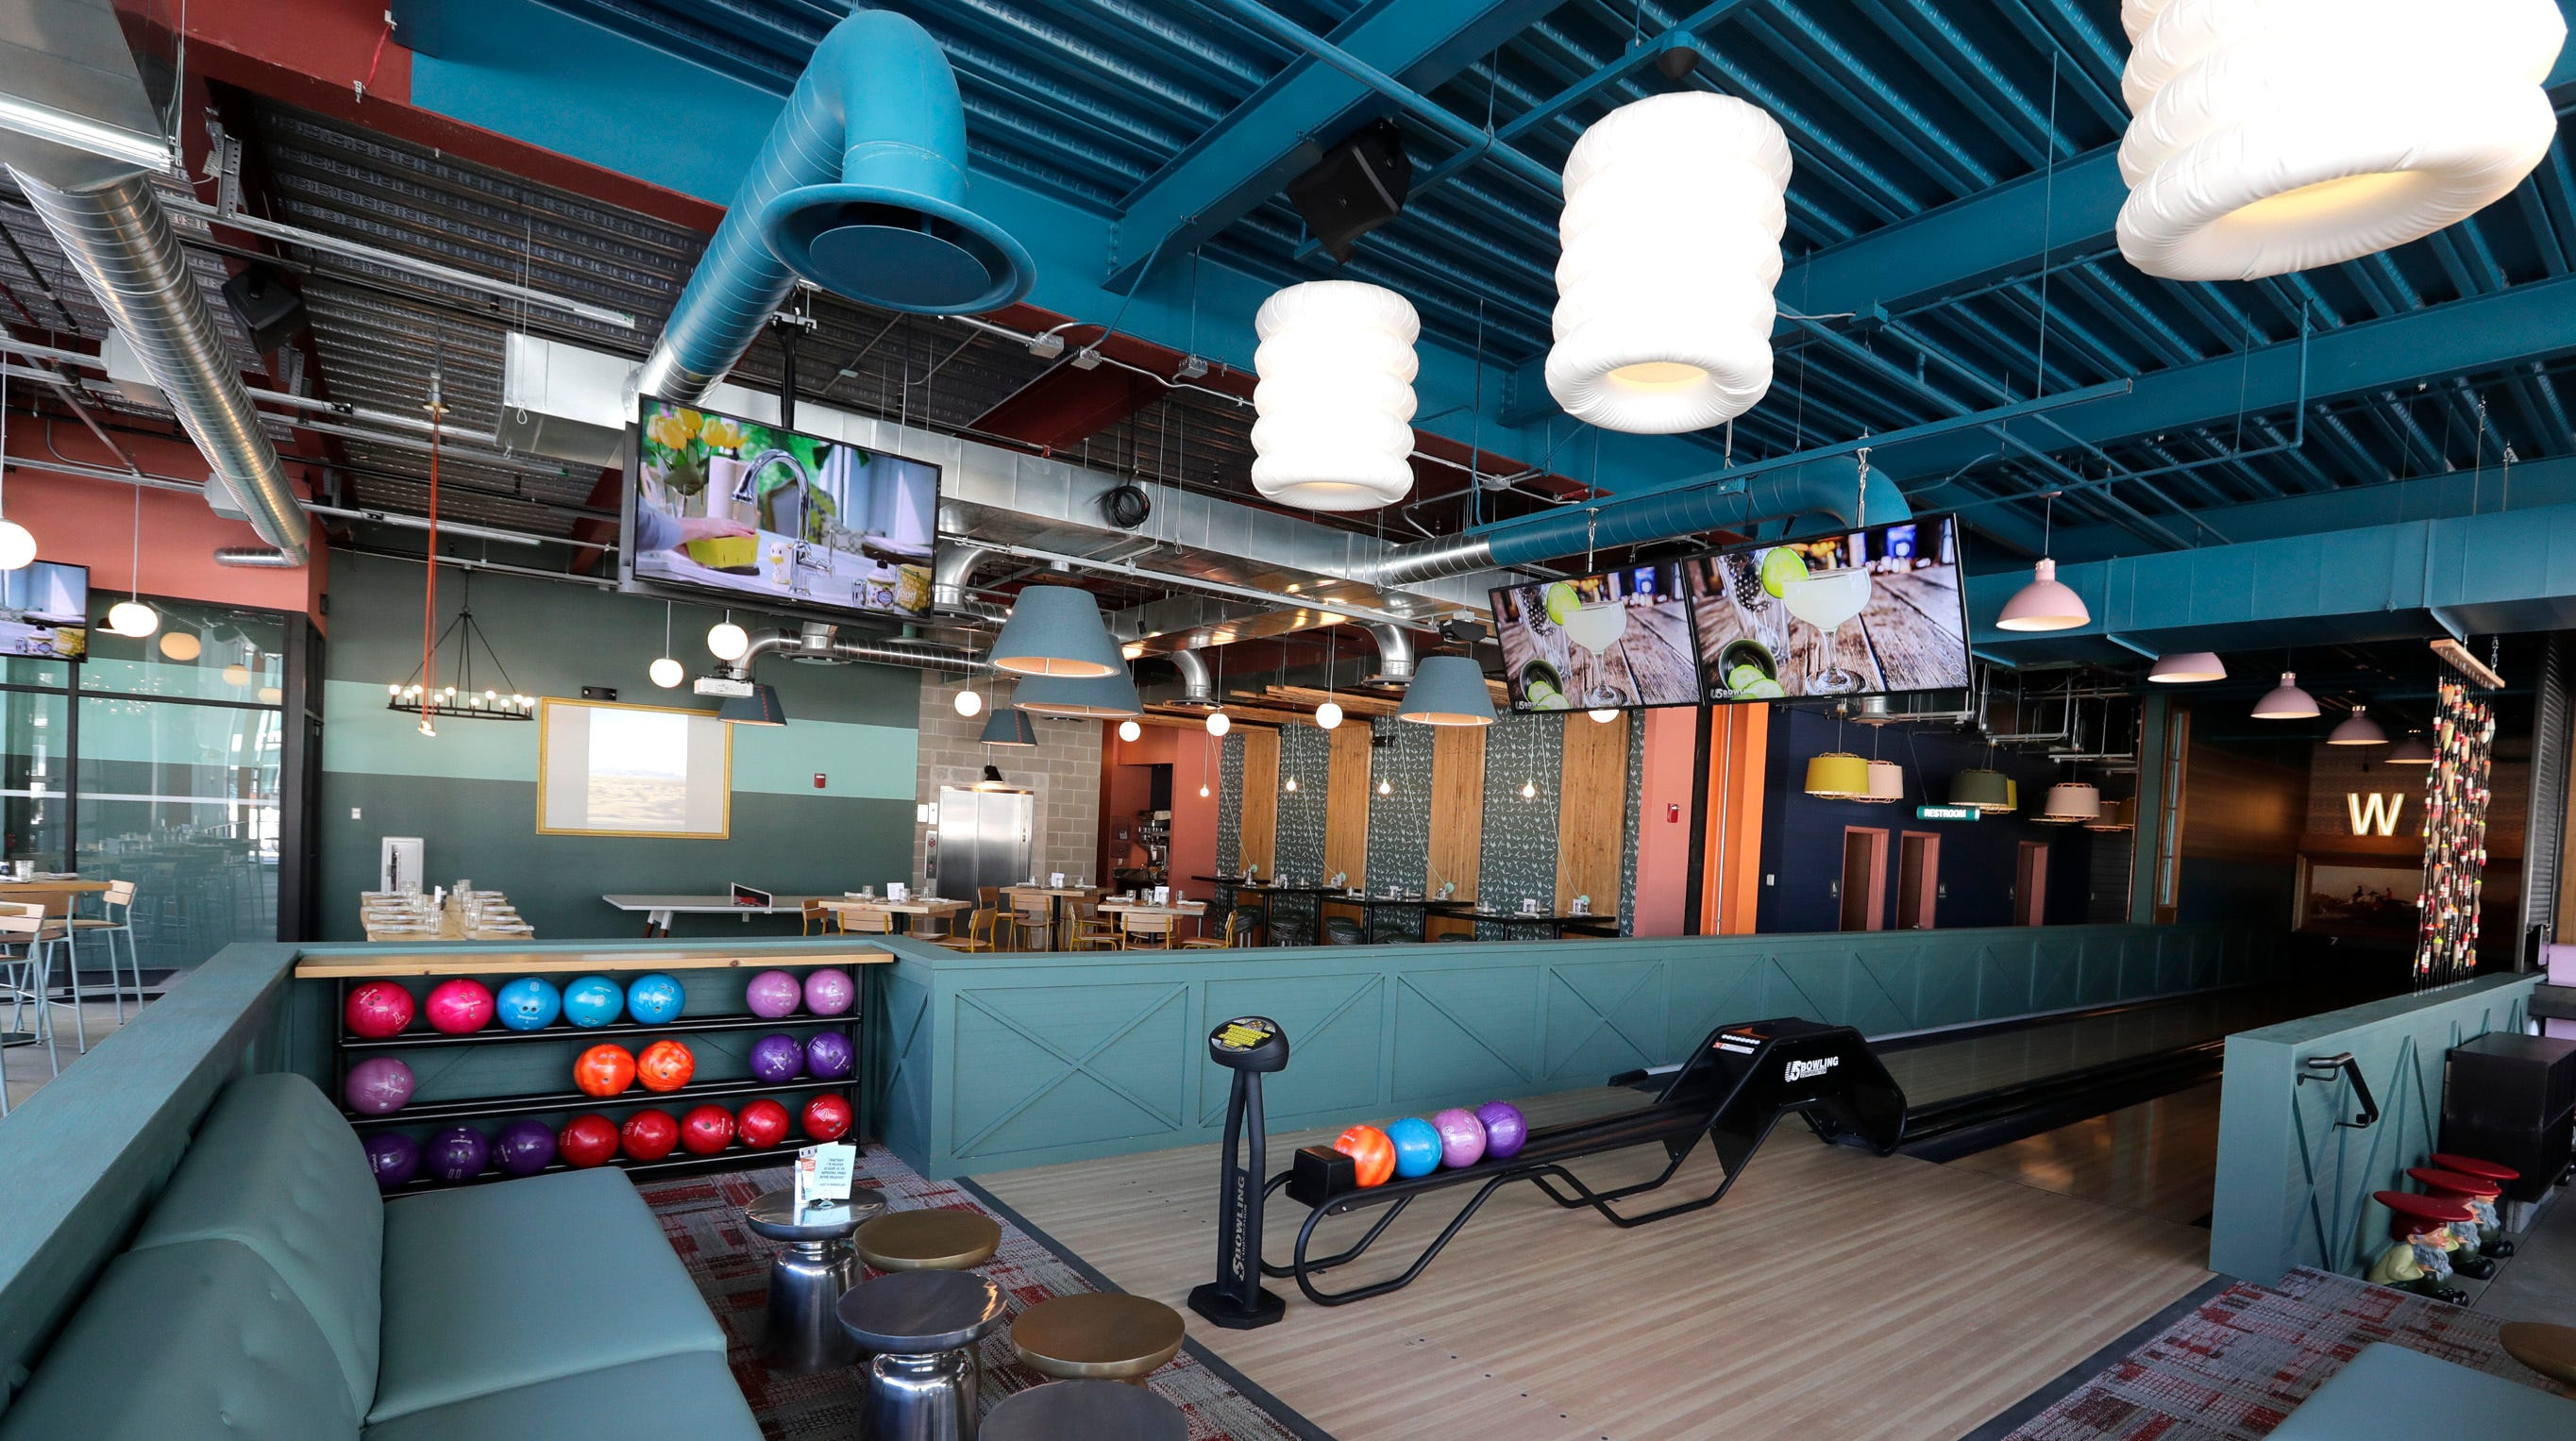 Bright colors mark the bowling alleys, as well as the balls, at Punch Bowl Social.